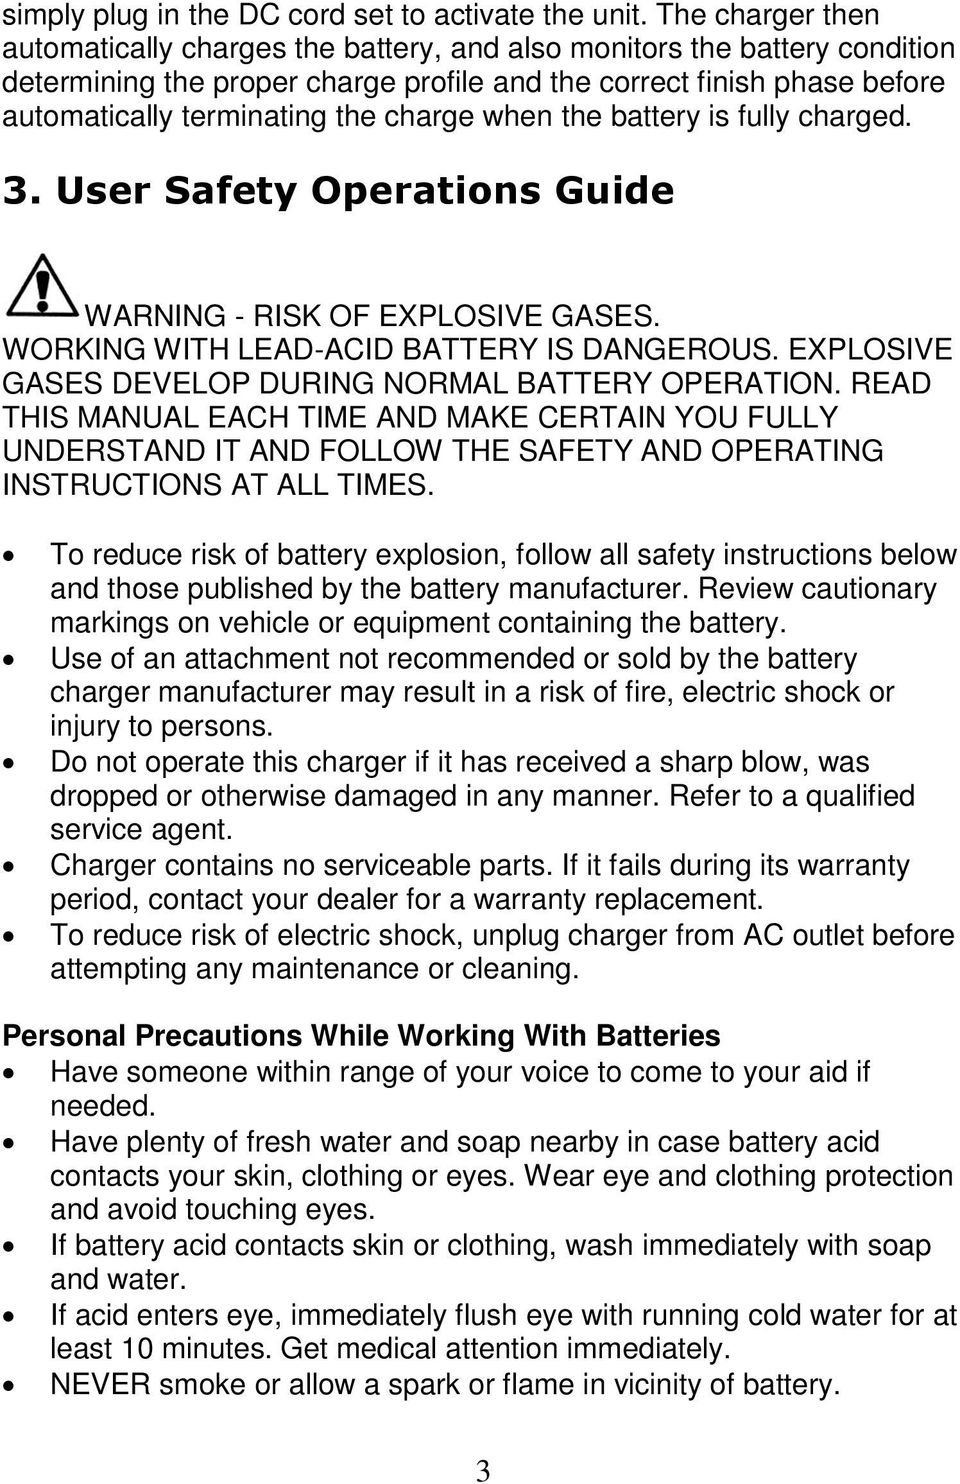 medium resolution of charge when the battery is fully charged 3 user safety operations guide warning